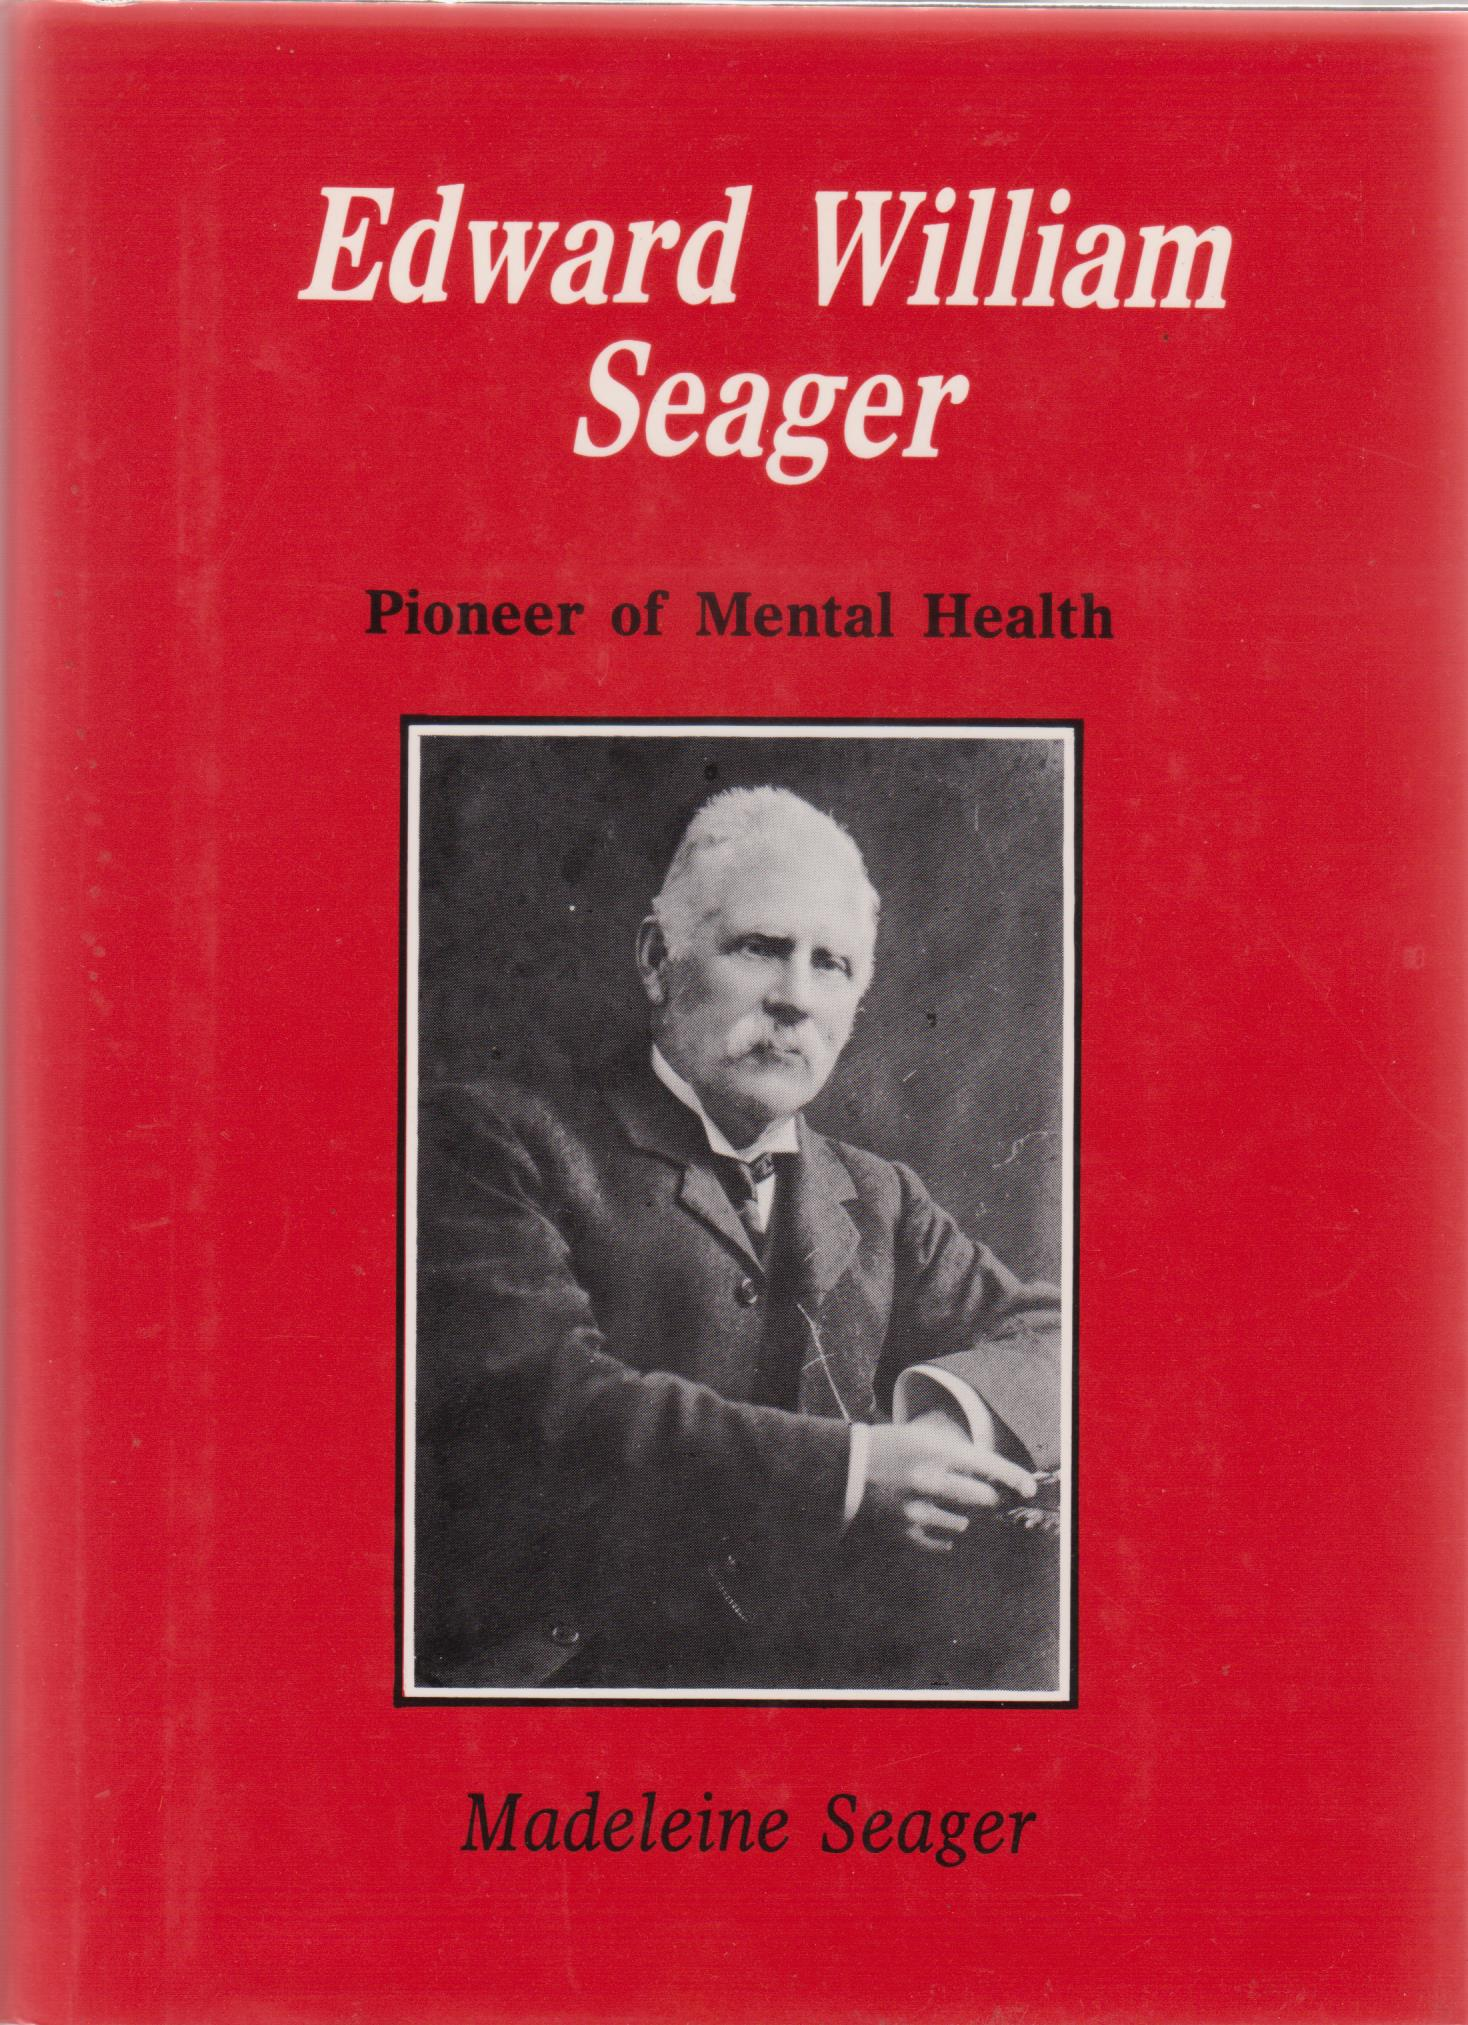 cover image of Edward William Seager, Pioneer of Mental Health for sale in New Zealand